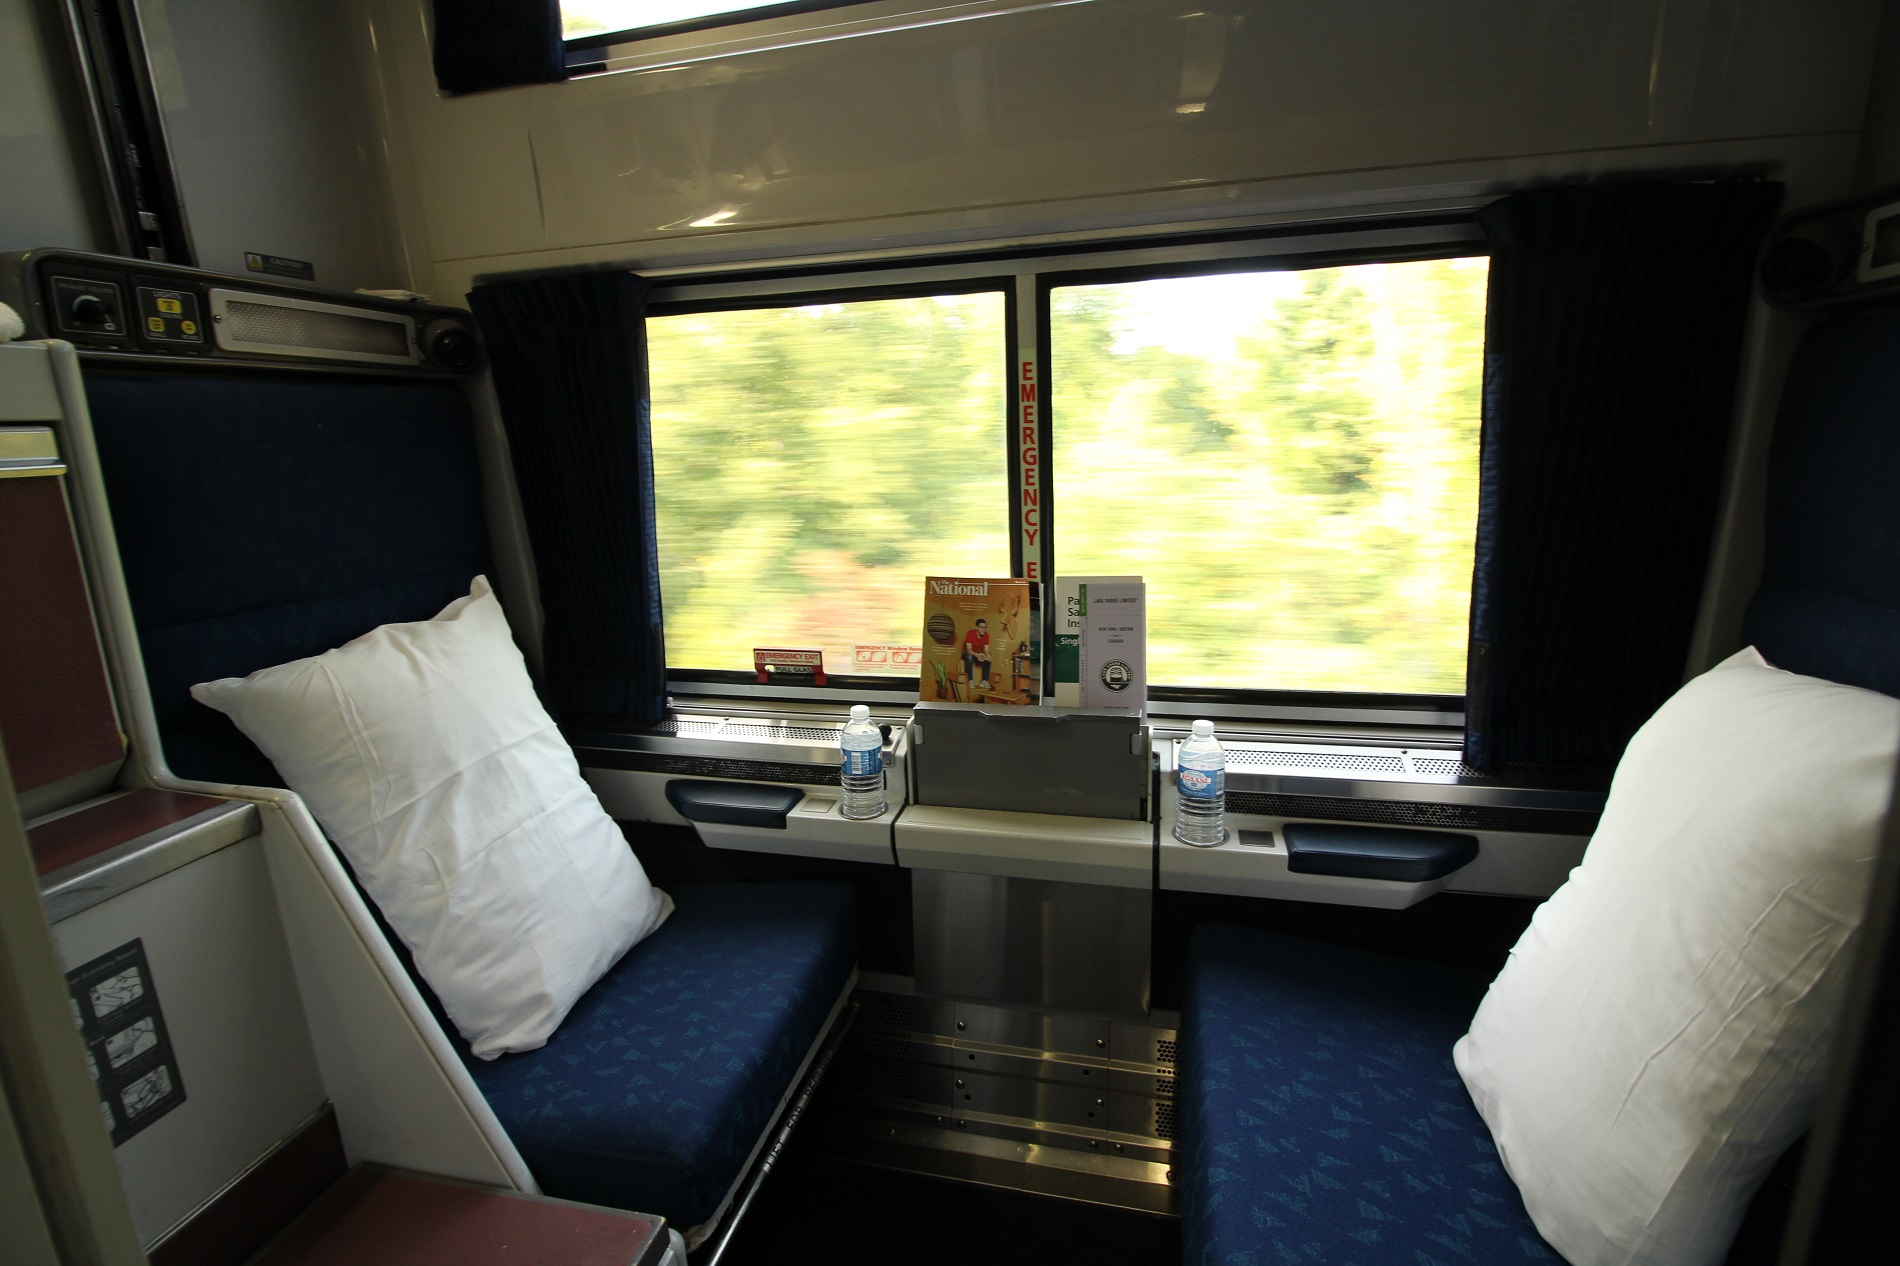 Photos and descriptions of my Amtrak overnight train on the Silver Meteor traveling between Florida and NYC. Plus Amtrak dining, sleepers and views.